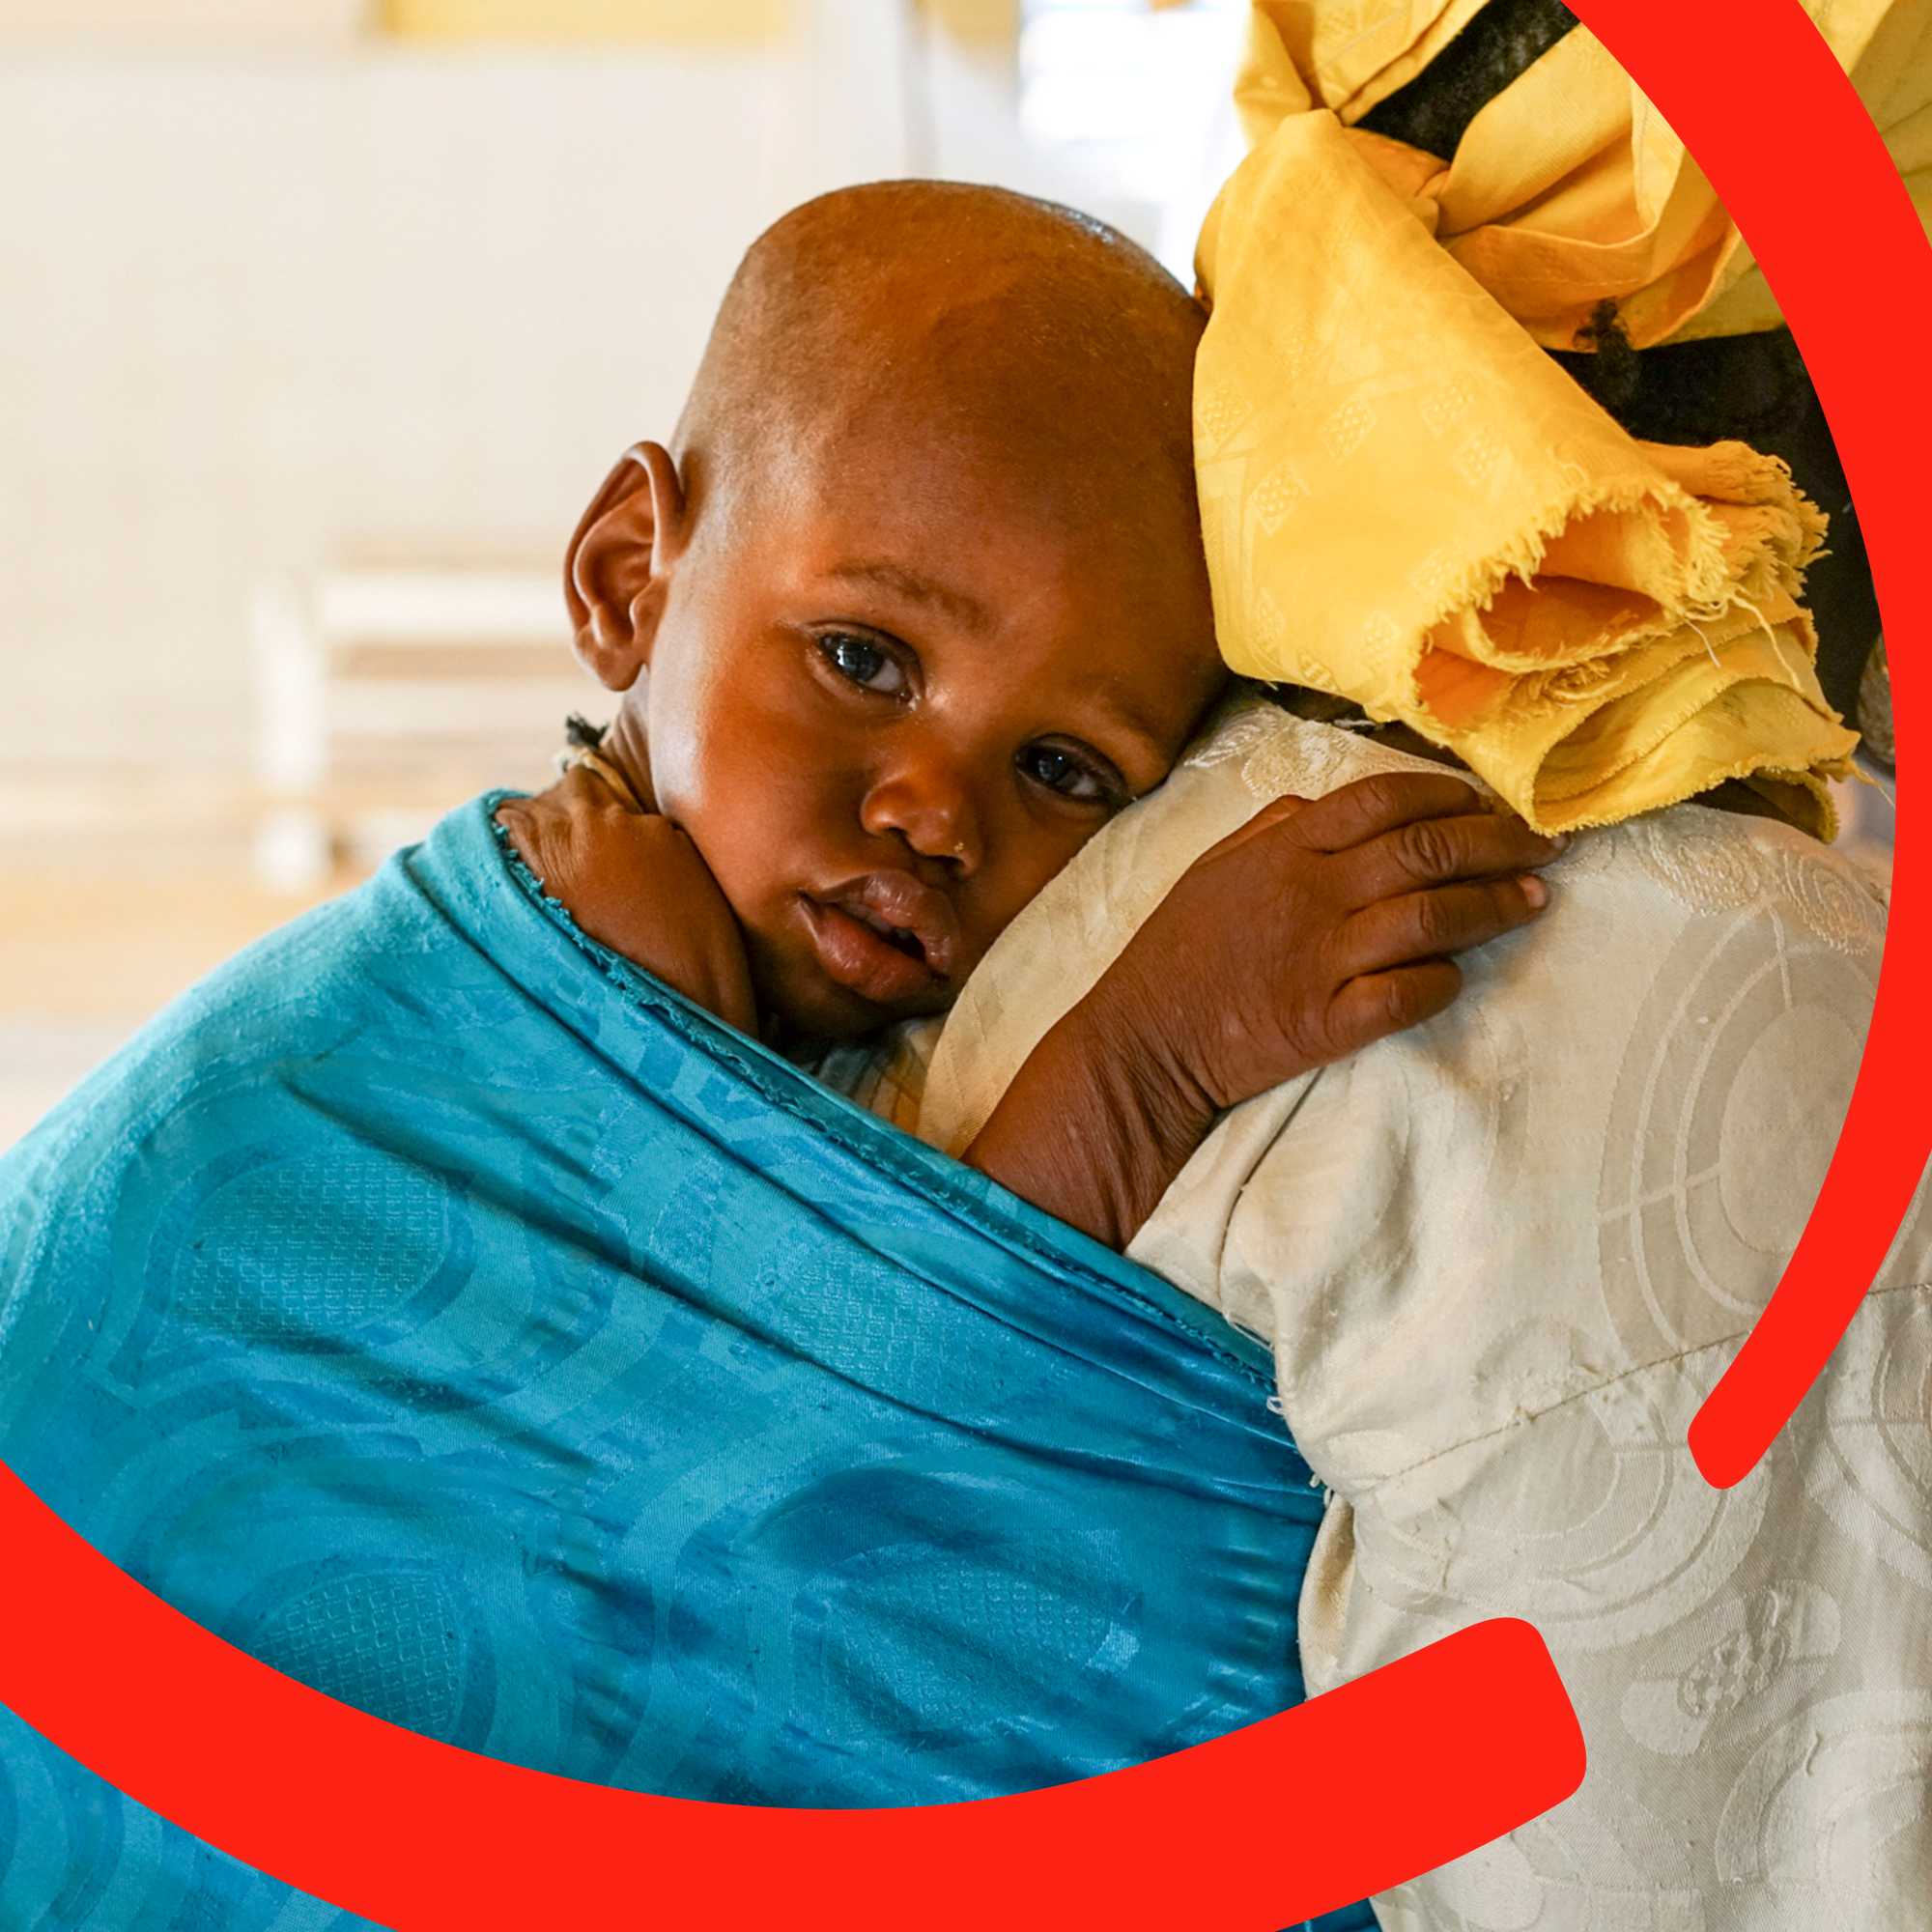 A 19-month old baby boy clings to his mother, who carries him on her back in a blue wrap. The boy has been treated for malnutrition at a stabilization center funded by Save the Children in Niger. Photo credit: Talitha Brauer / Save the Children, July 2016.